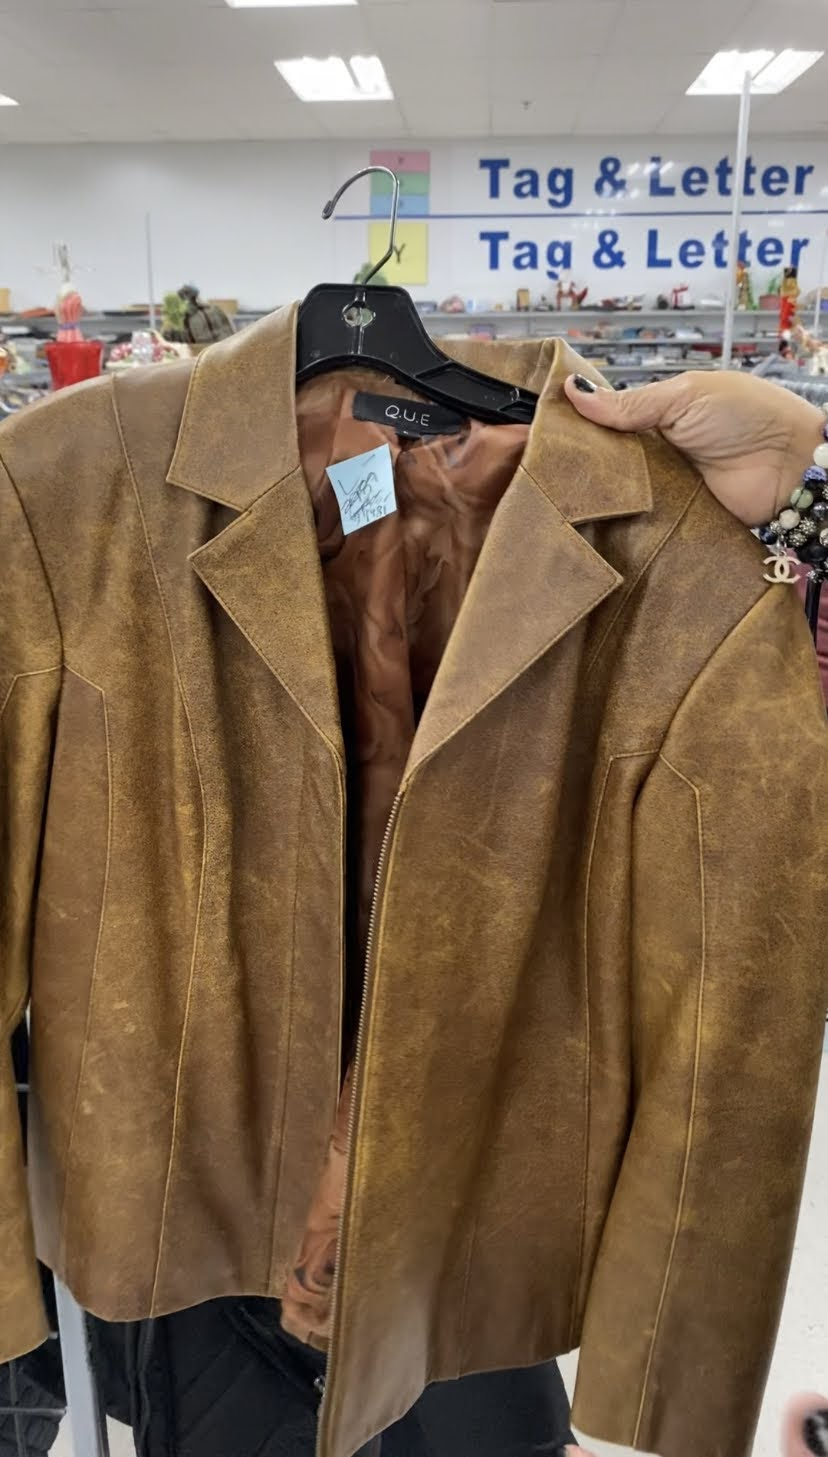 Thrift Snooping Finds